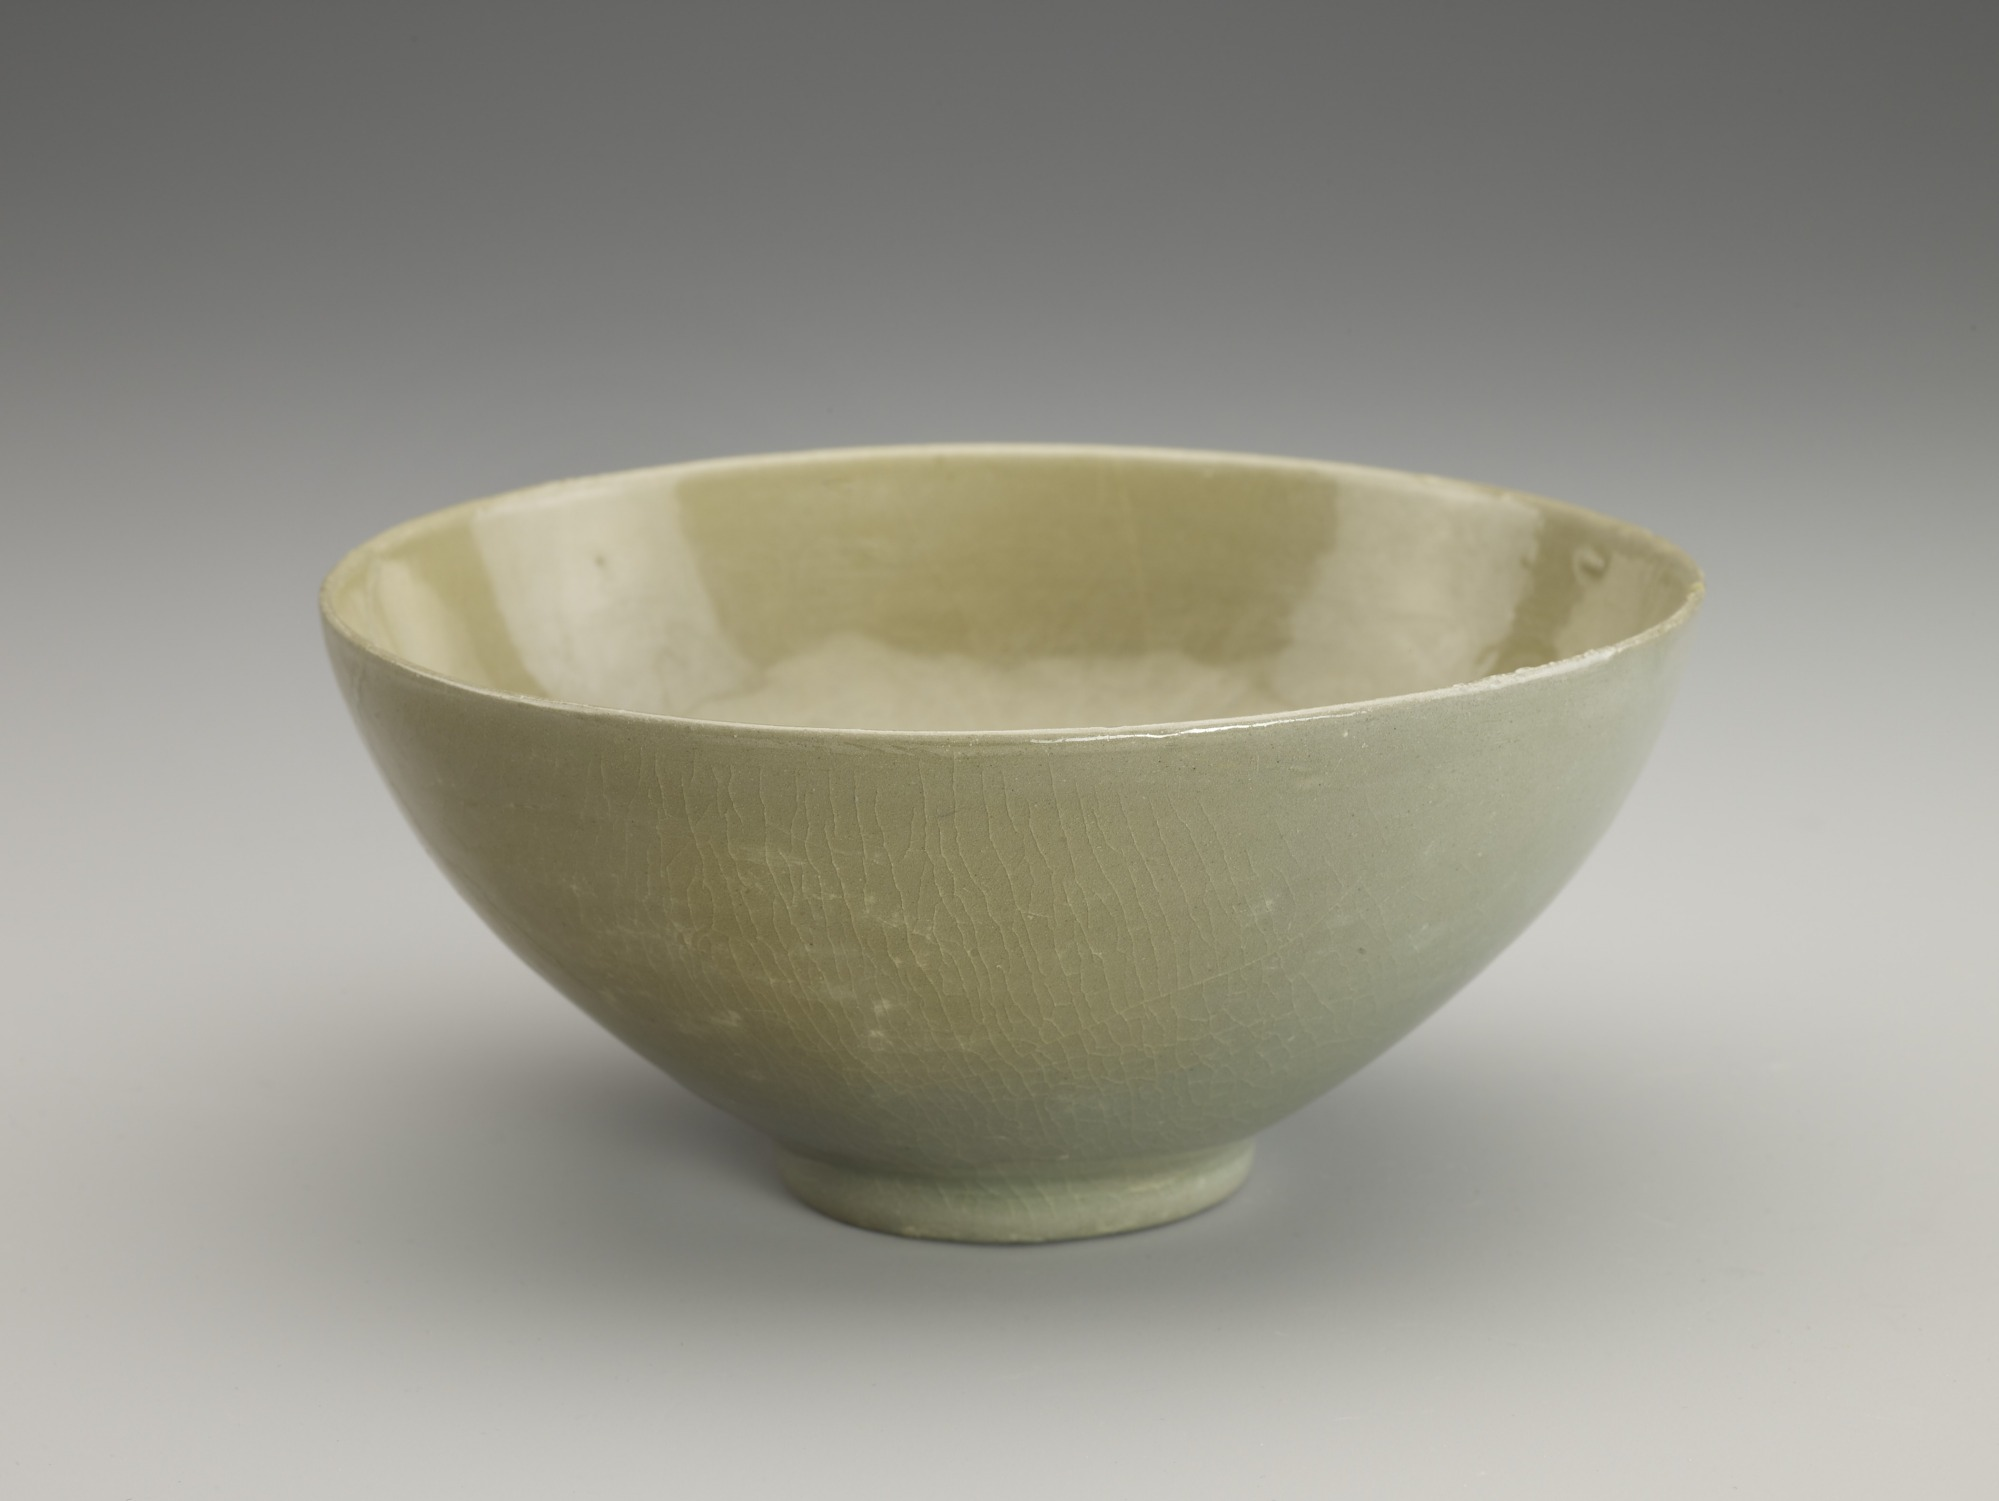 Bowl with molded floral decor, profile